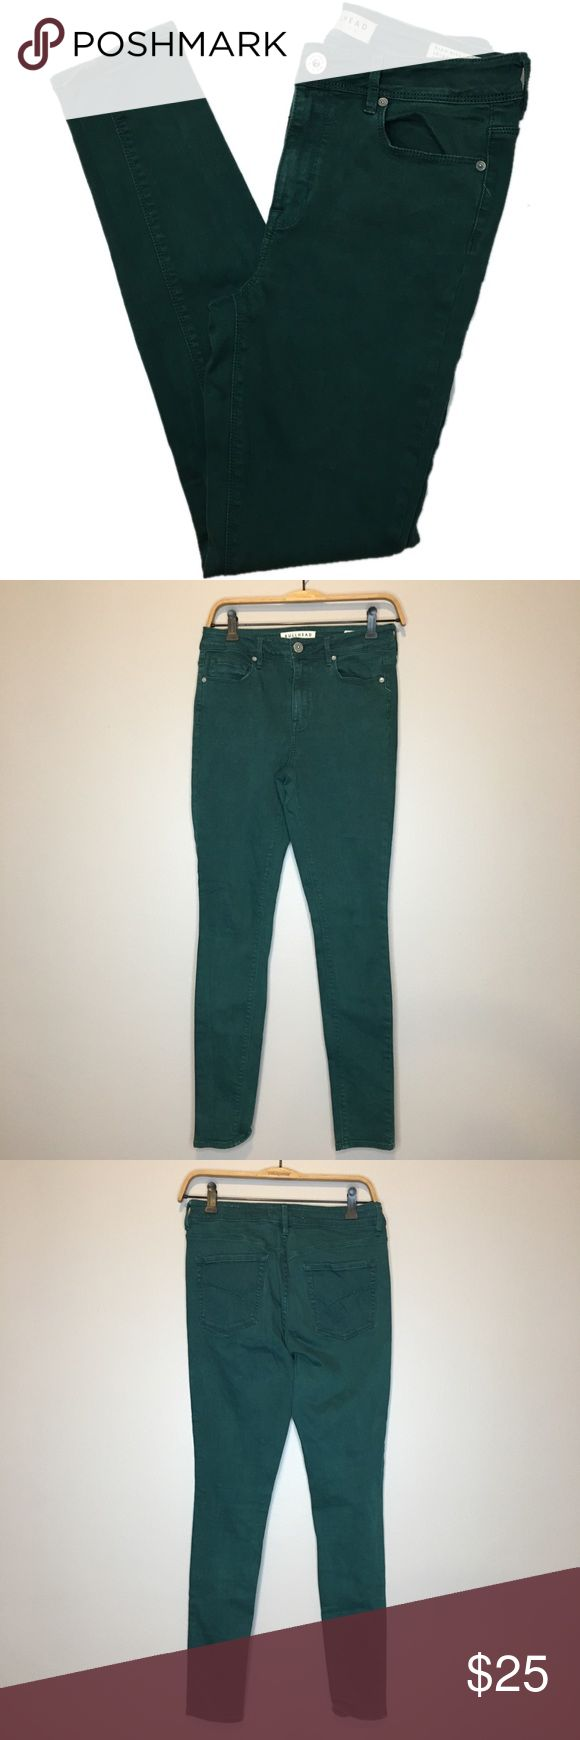 "Bullhead High Rise Skinniest Teal Jeans - Size 7 Great condition Bullhead High Rise Skinniest Teal Skinny Jeans in size 7.  Inseam: 28"" Materials: 64% cotton, 34% rayon, 2% spandex. Bullhead Jeans Skinny"